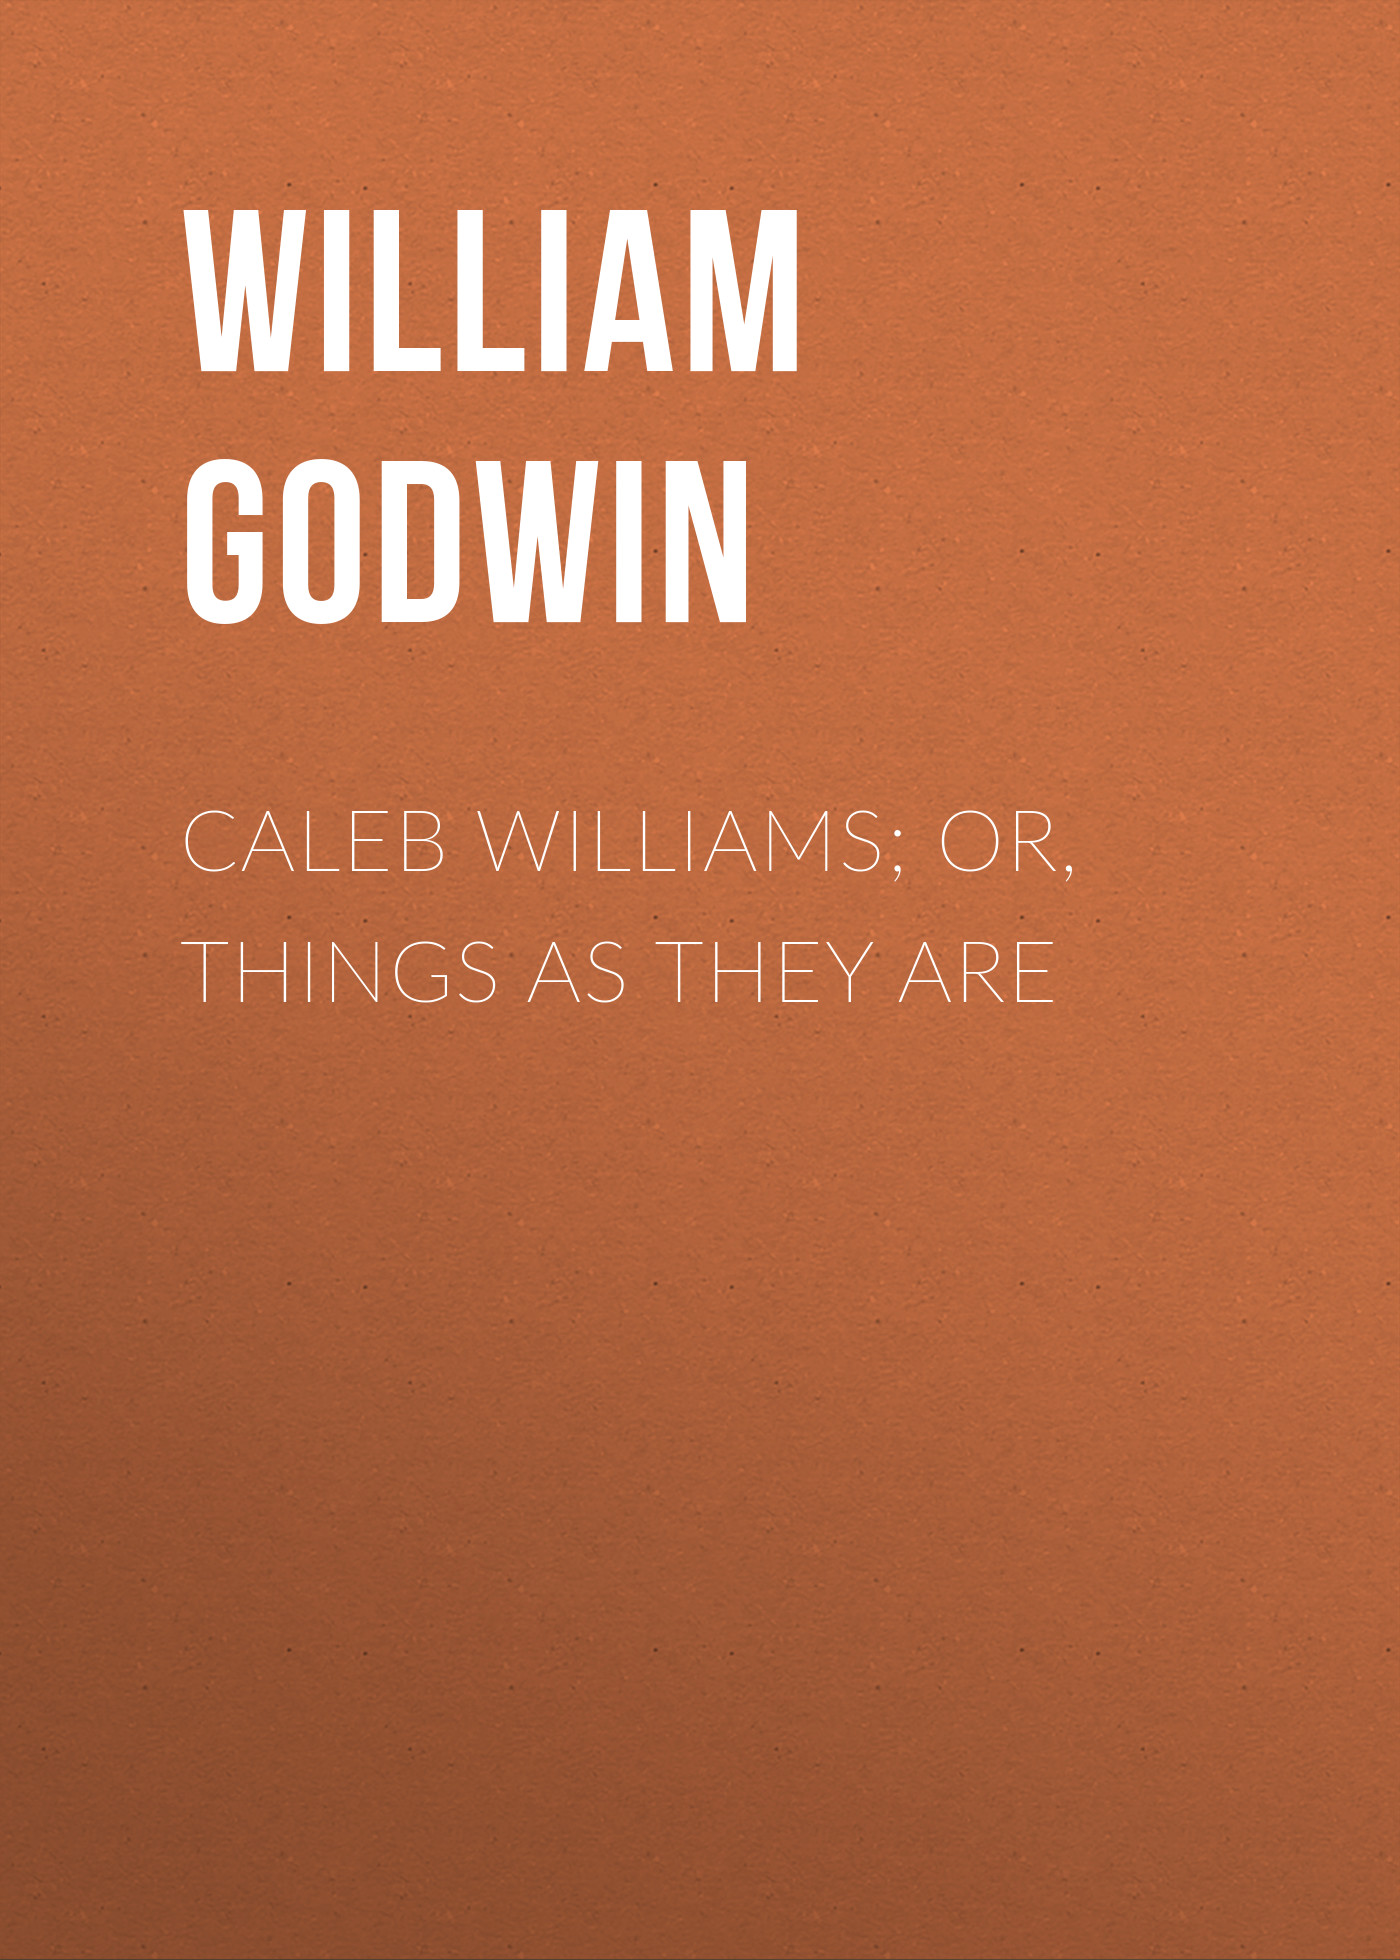 William Godwin Caleb Williams; Or, Things as They Are william godwin italian letters vols i and ii